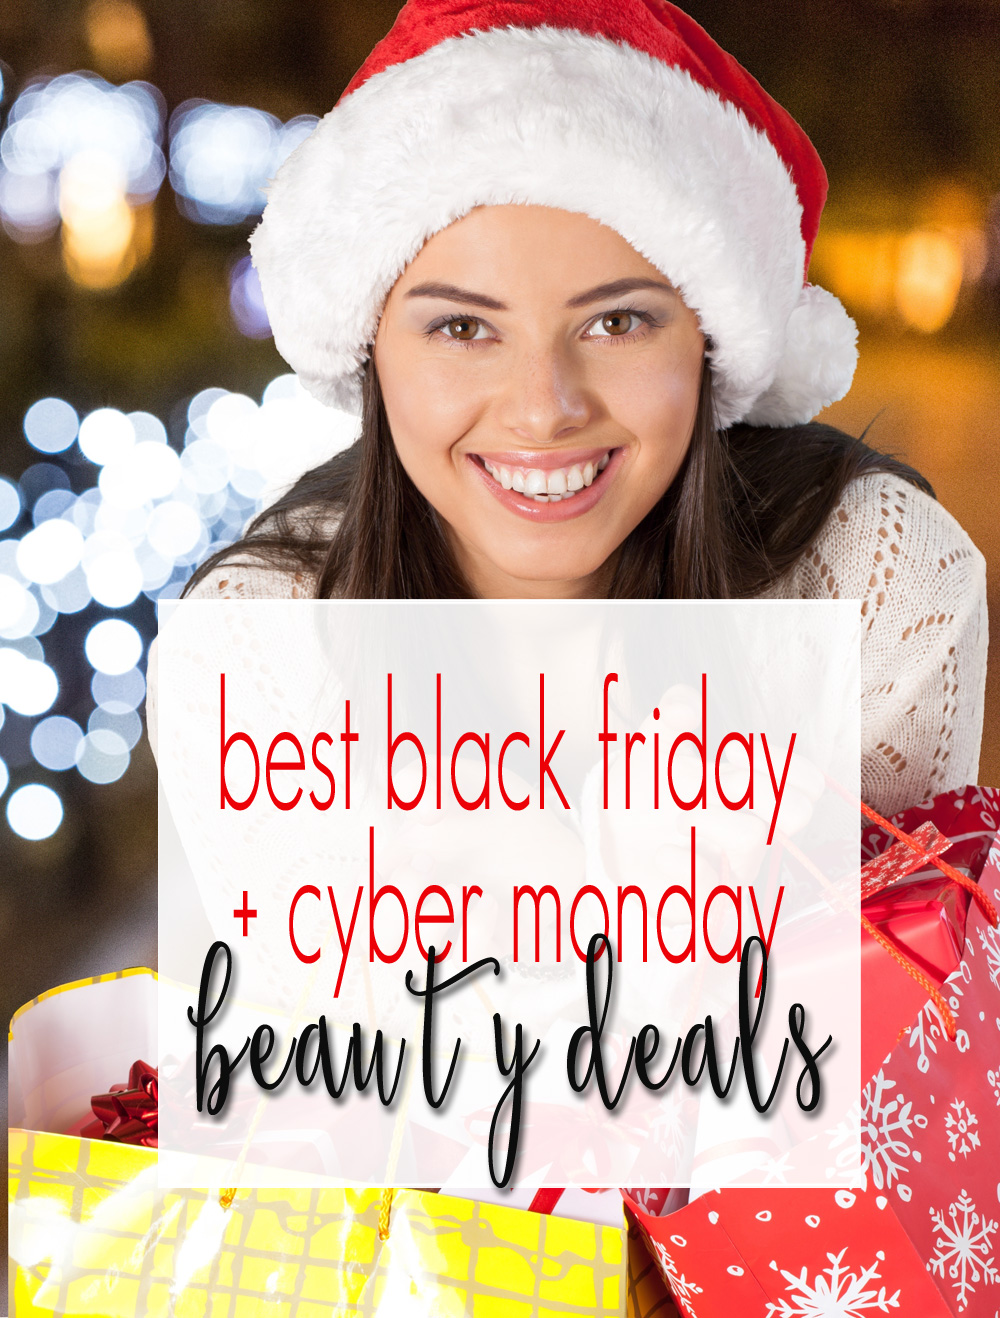 Best Black Friday + Cyber Monday Beauty Deals: I've got all of the % OFF, BOGO, GWP, Freebies and more listed!